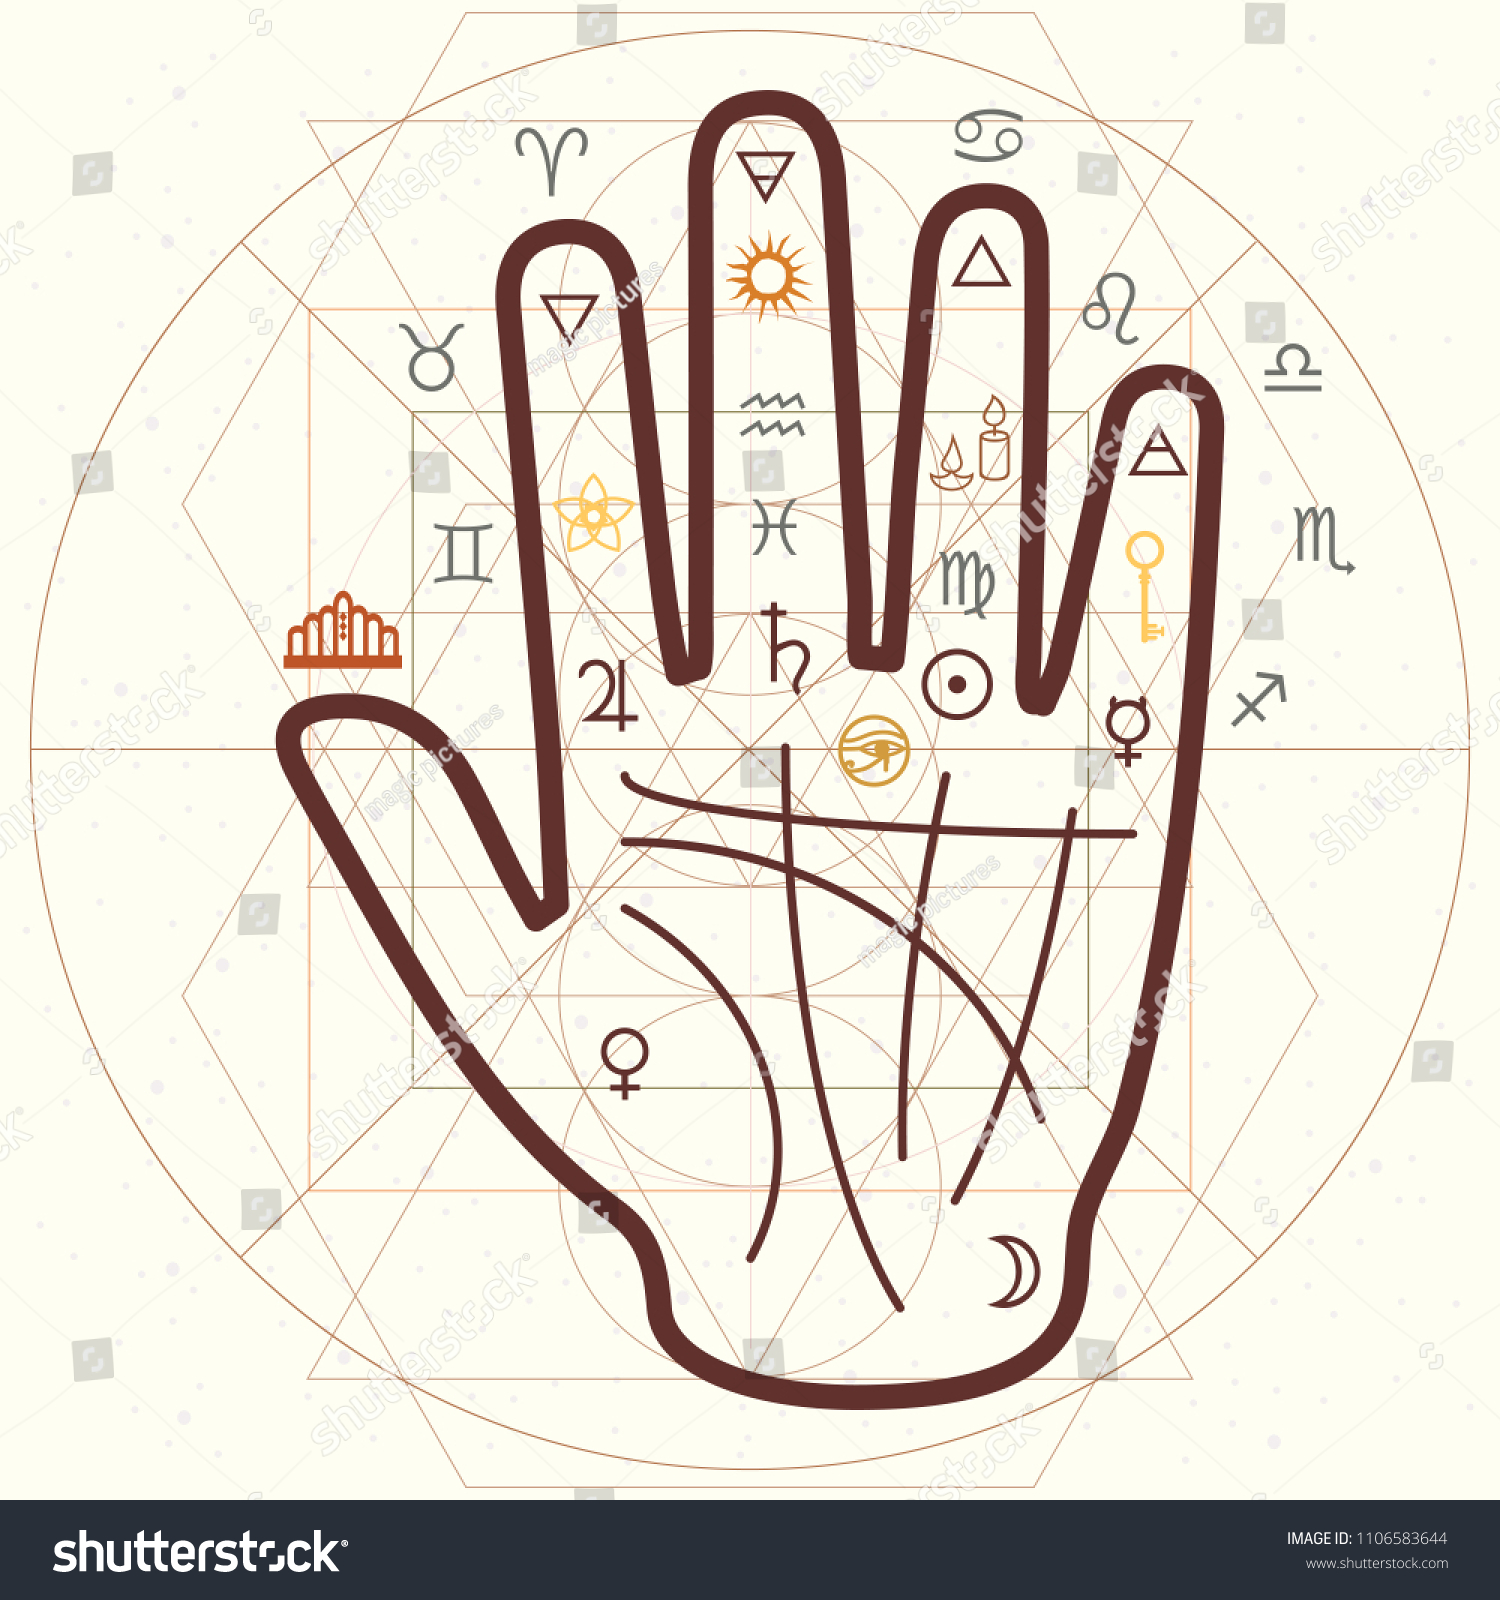 hight resolution of vector horizontal illustration of palm reading and scared symbols in retro style vintage colors